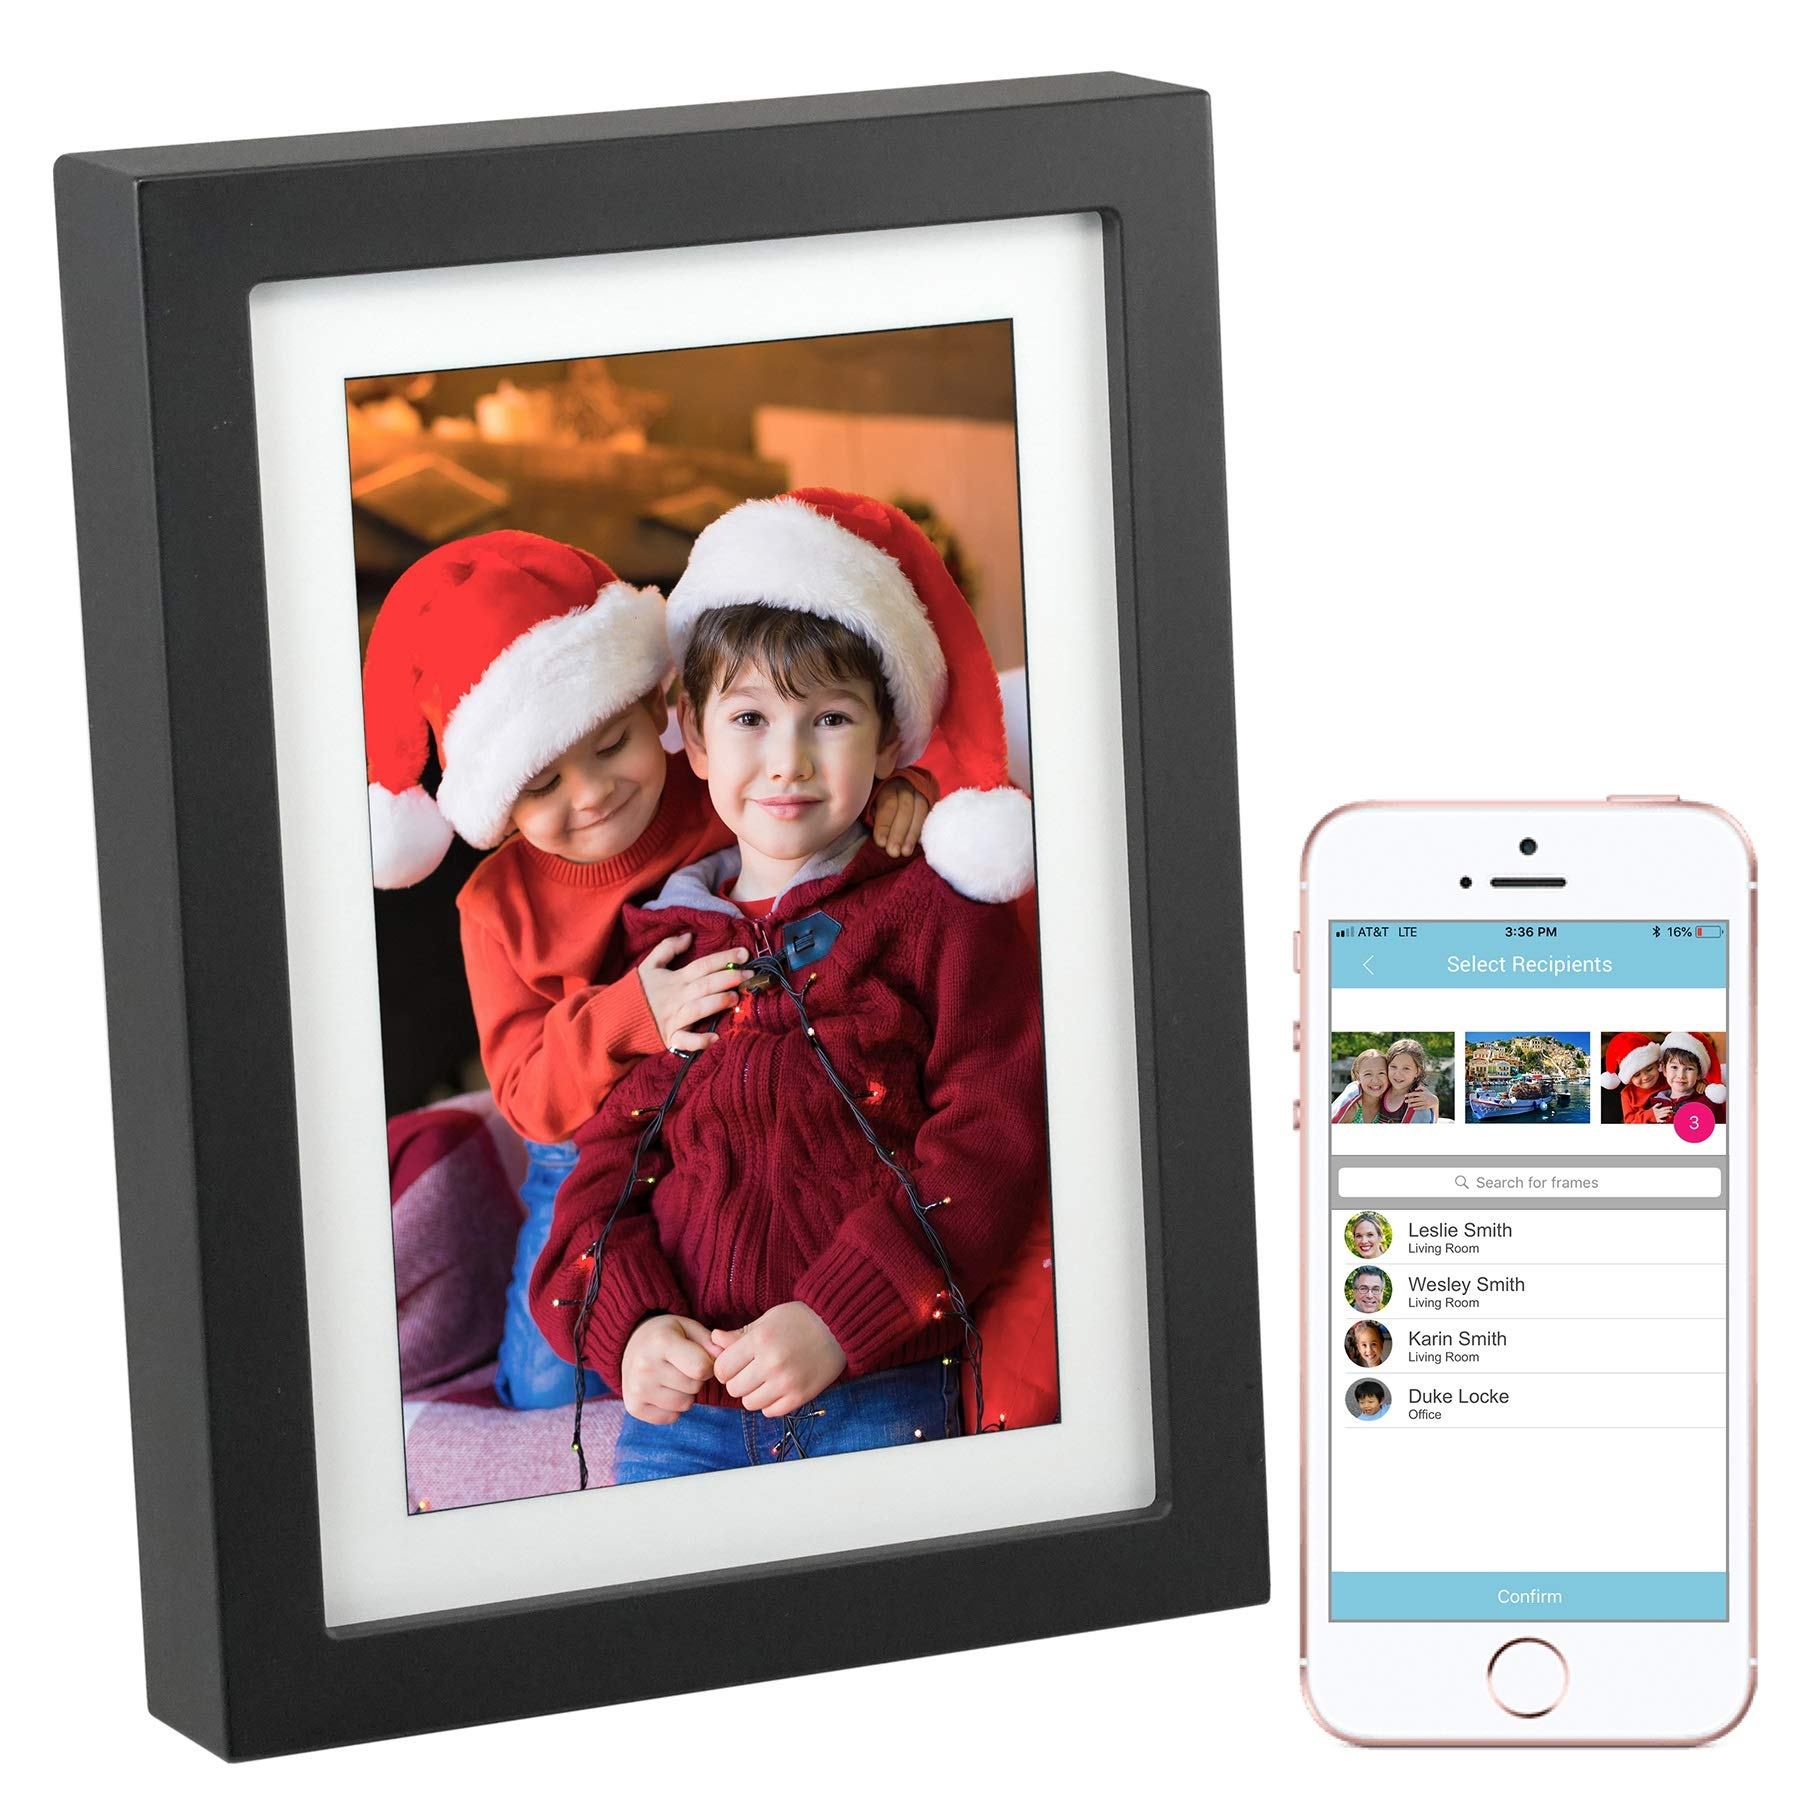 PhotoSpring 8 (16GB) 8-inch WiFi Cloud Digital Picture Frame - Battery, Touch-Screen, Plays Video and Photo Slideshows, HD IPS Display, iPhone & Android app (Black - 15,000 Photos) by PhotoSpring